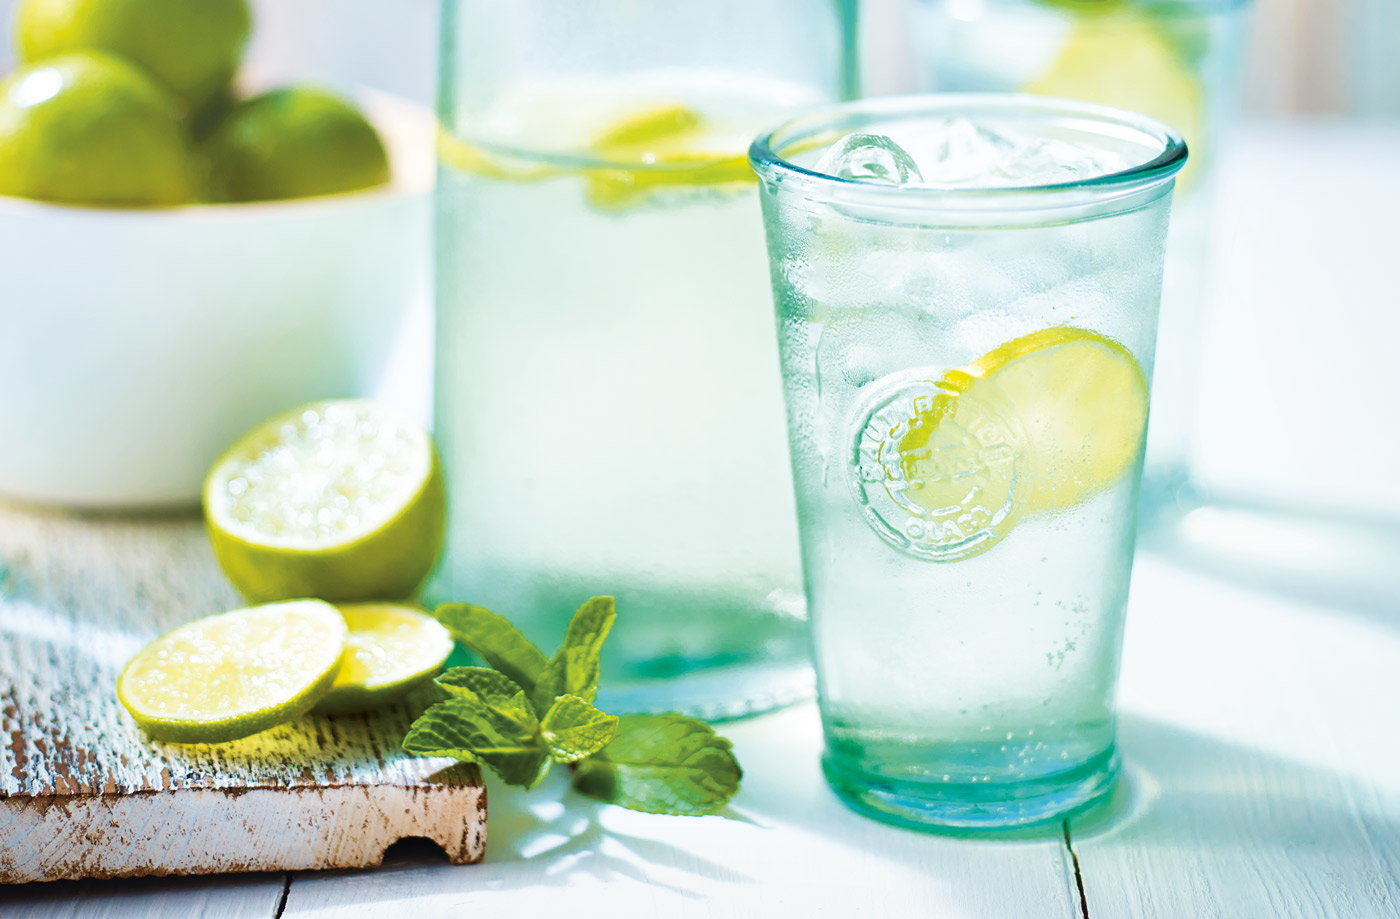 Ginger lime fizz recipe